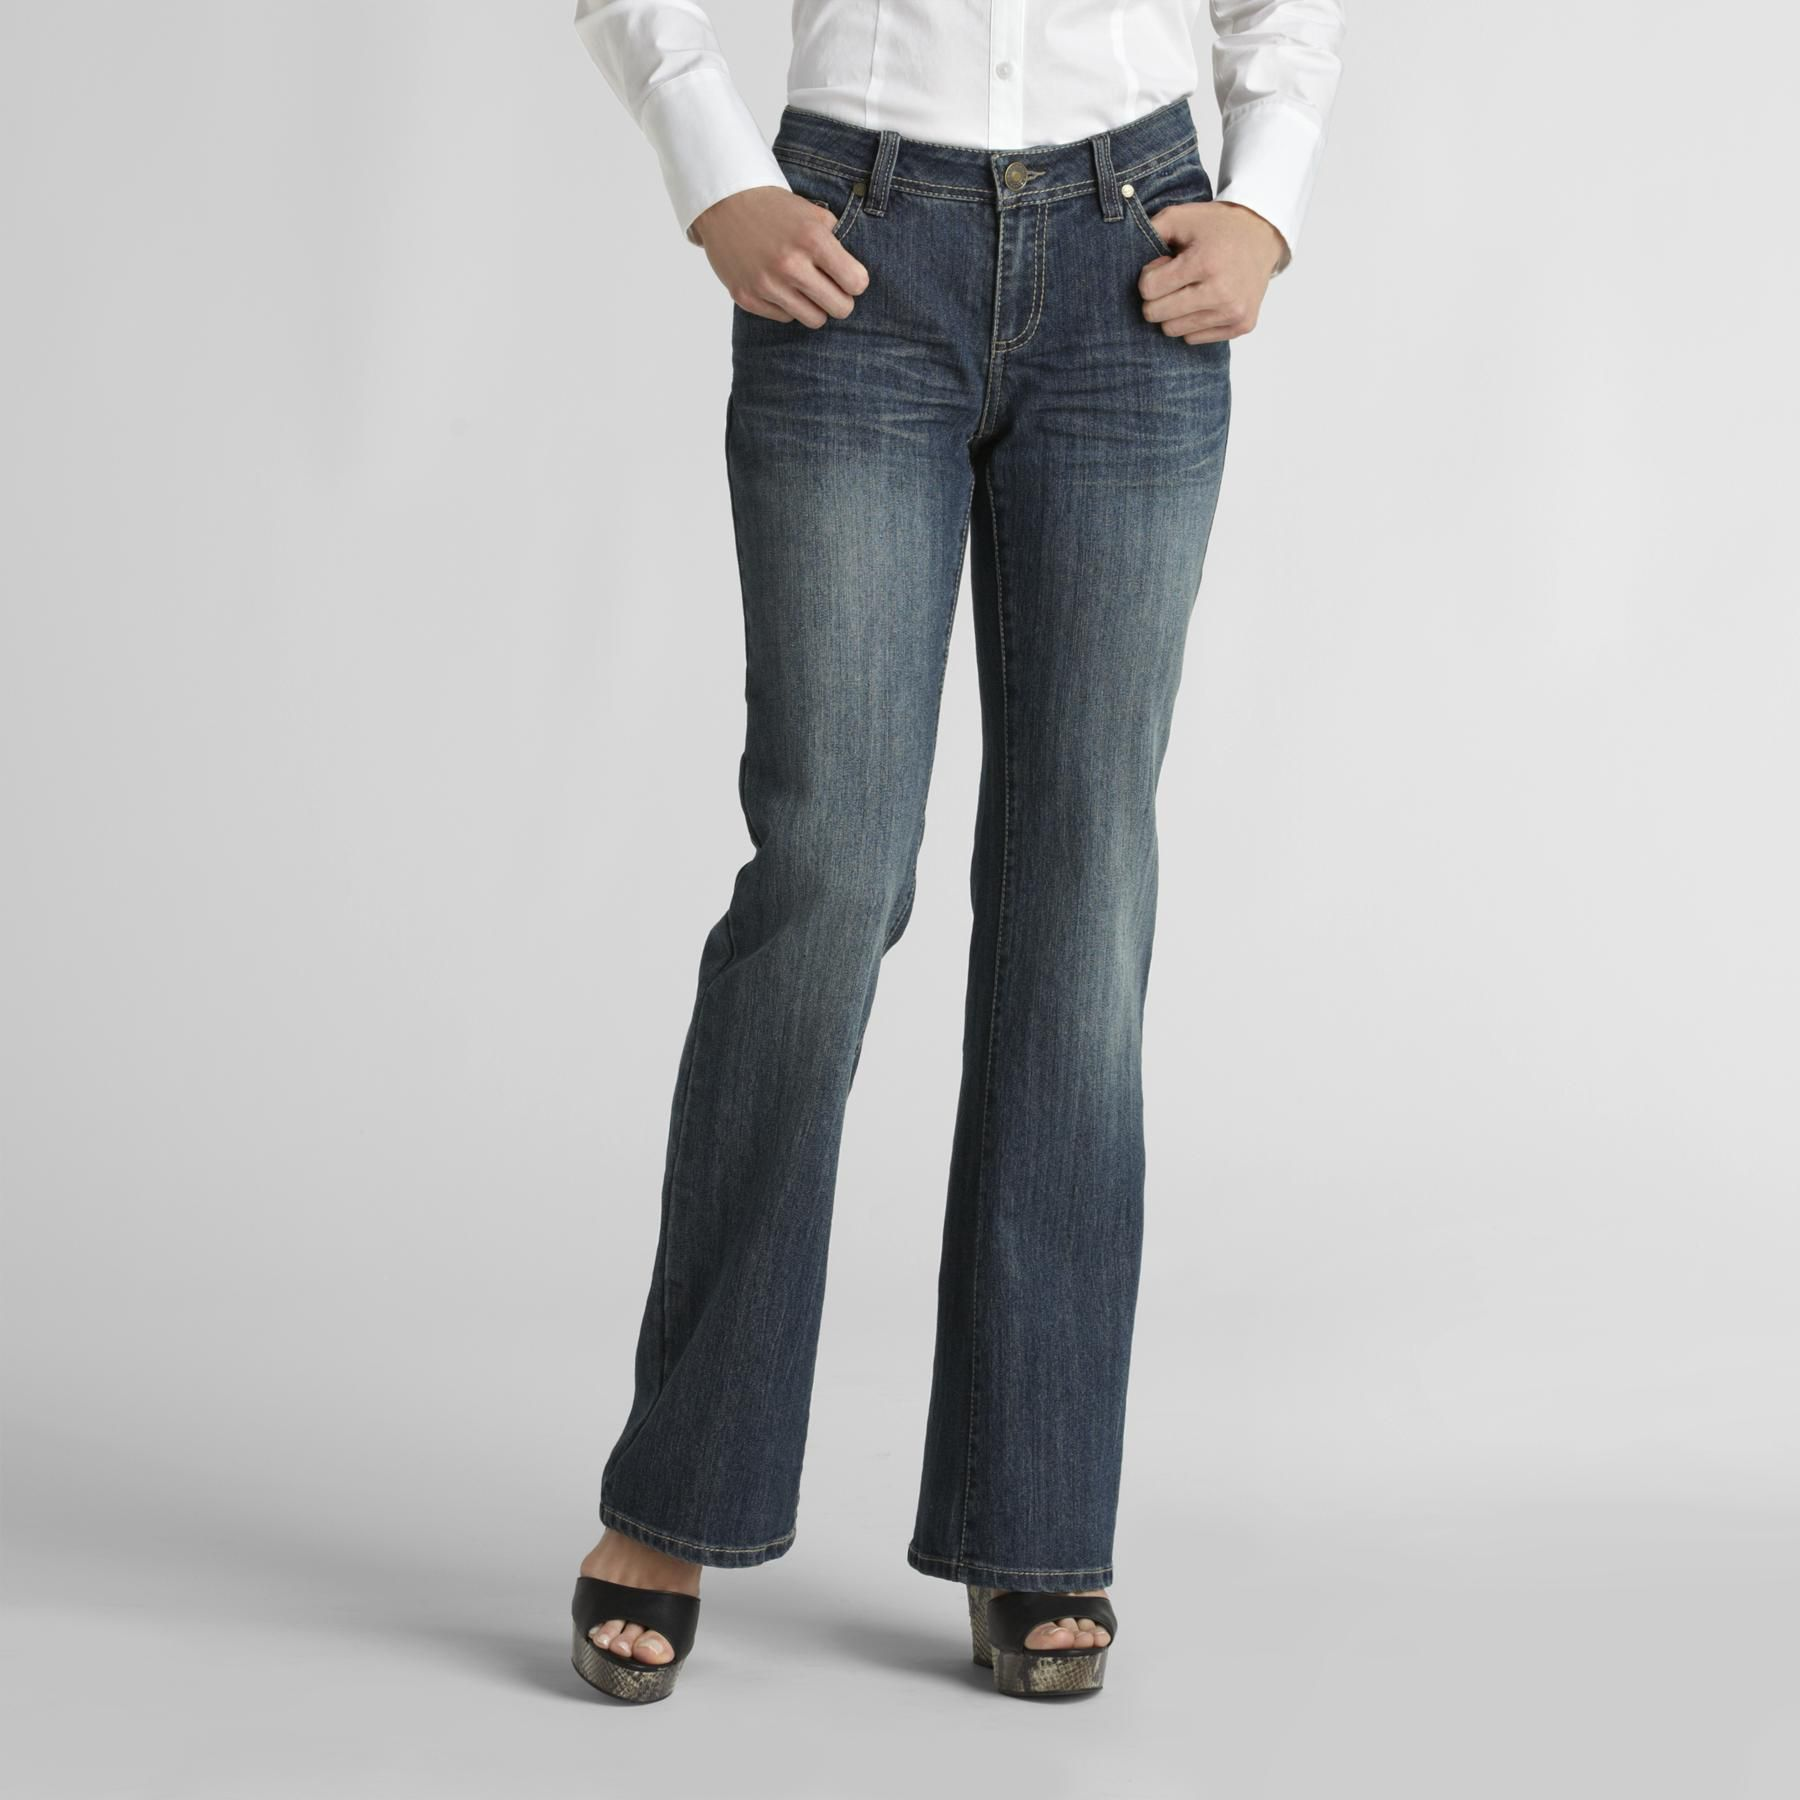 Canyon River Blues Women's Curvy Flare Jeans at Sears.com